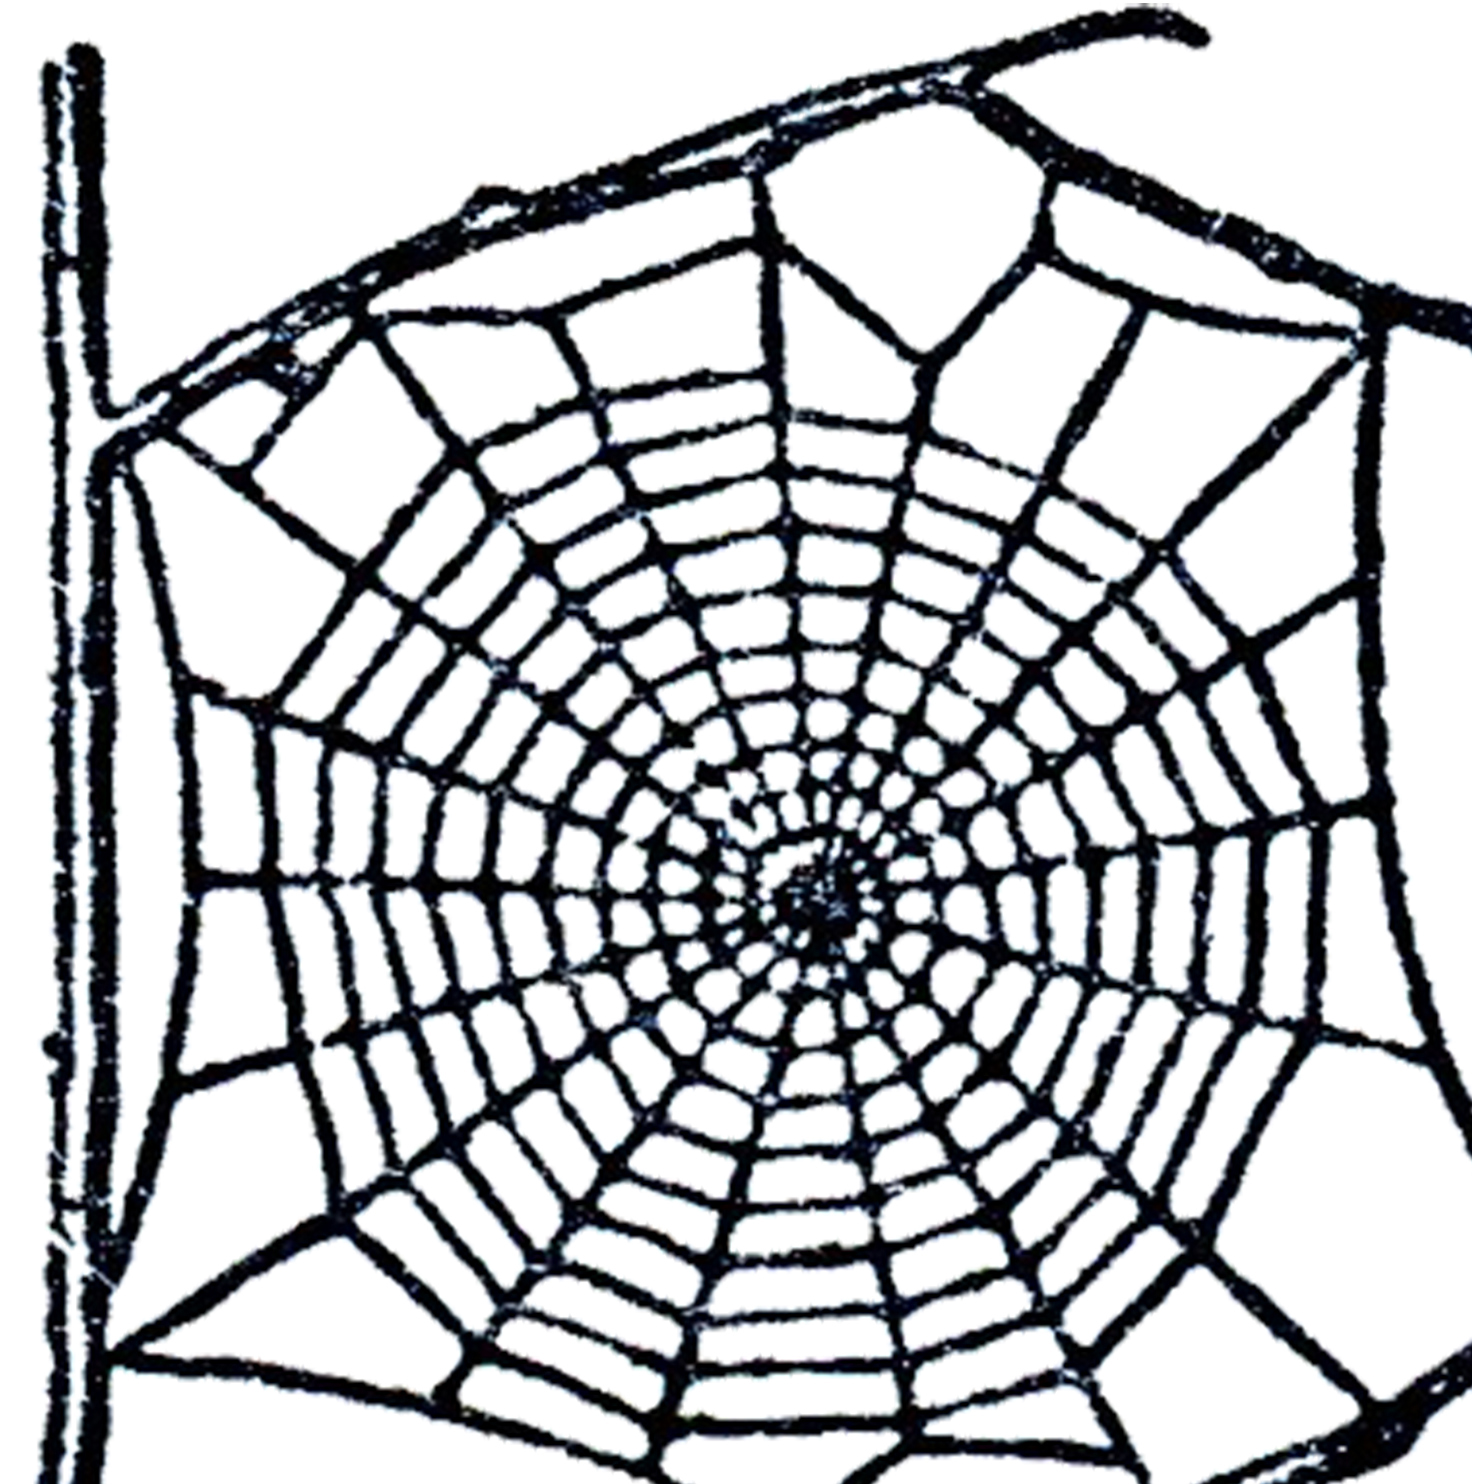 - Spider Web Clipart